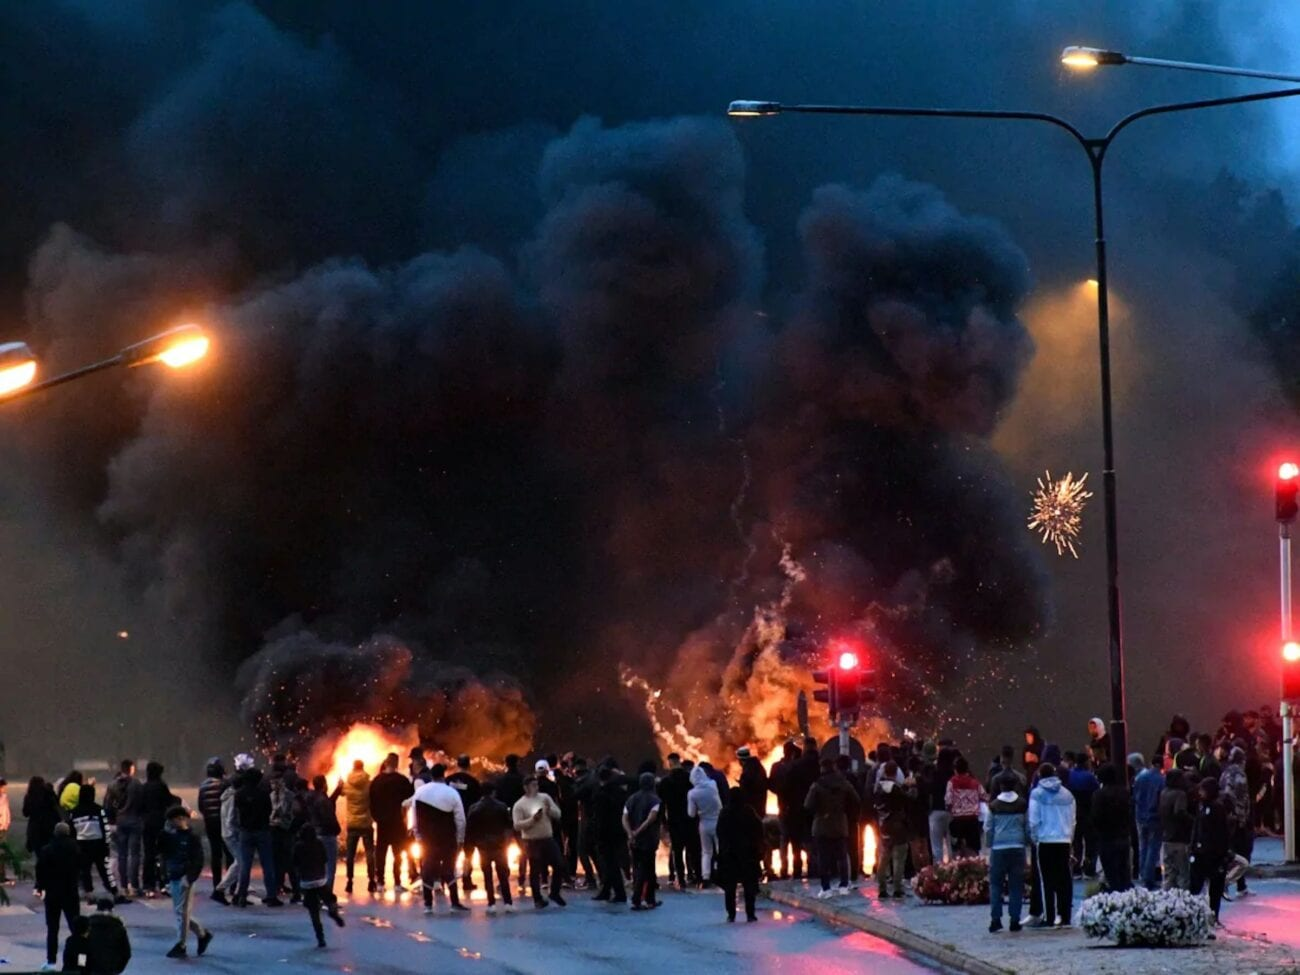 Once one of the safest countries in Europe, Sweden's crime map is now littered with gang-related incidents, terrorism, and street riots.